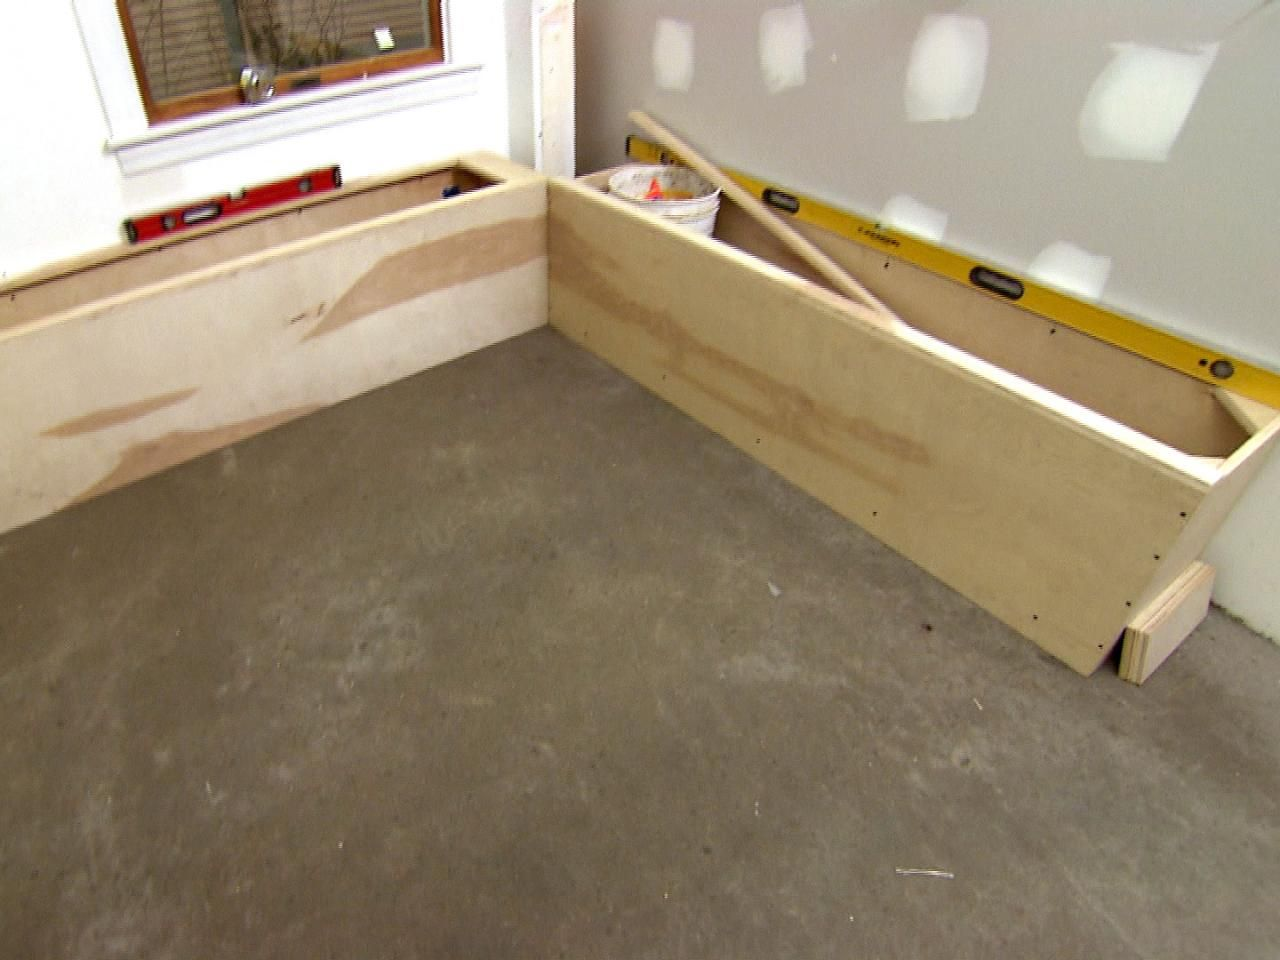 How To Build A Banquette Storage Bench Banquette Seating In Kitchen Kitchen Storage Bench Storage Bench Seating